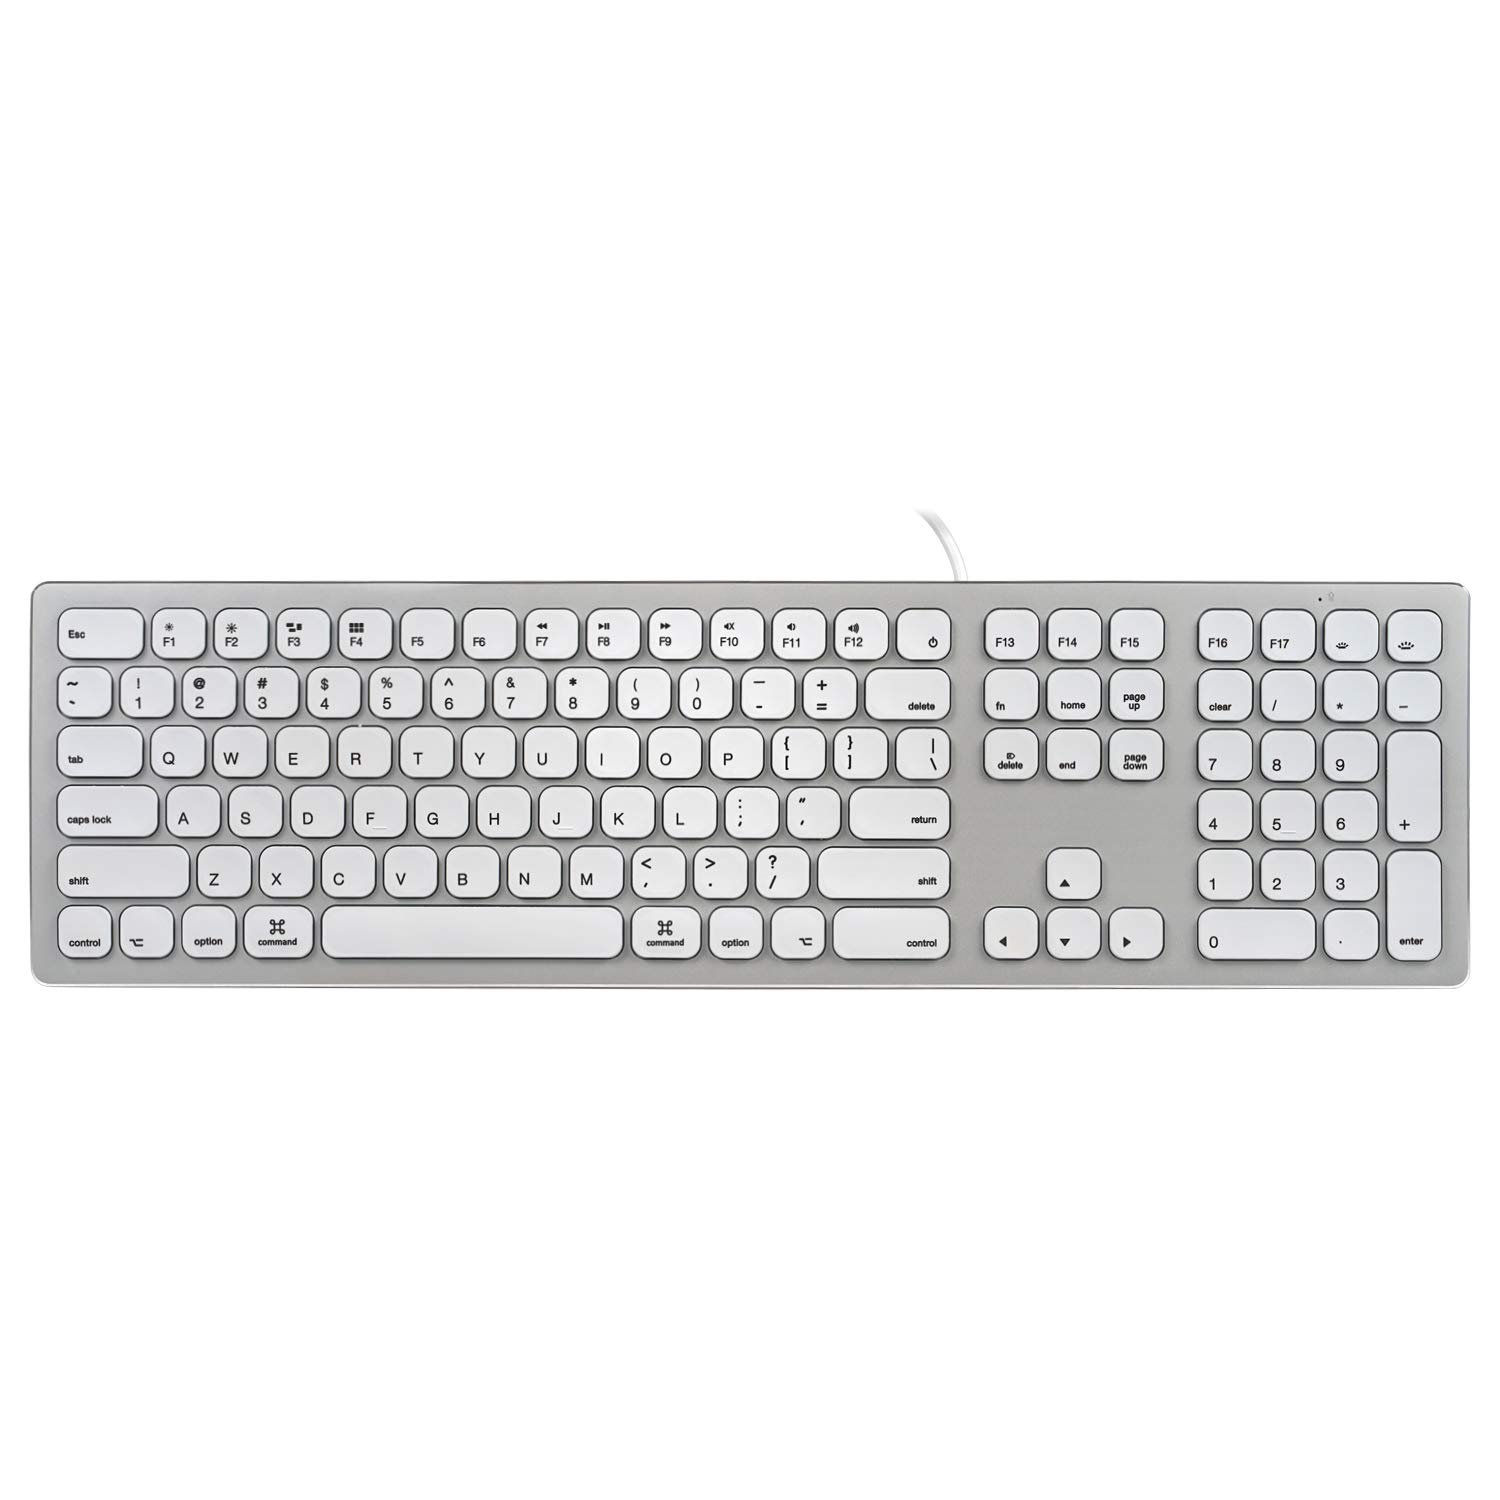 Perixx PERIBOARD-325 MW - Wired Backlit Aluminum Keyboard - Compatible with Mac OS X - Full Size Design - Silent Scissor Keys - 2 x USB 2.0 Hubs